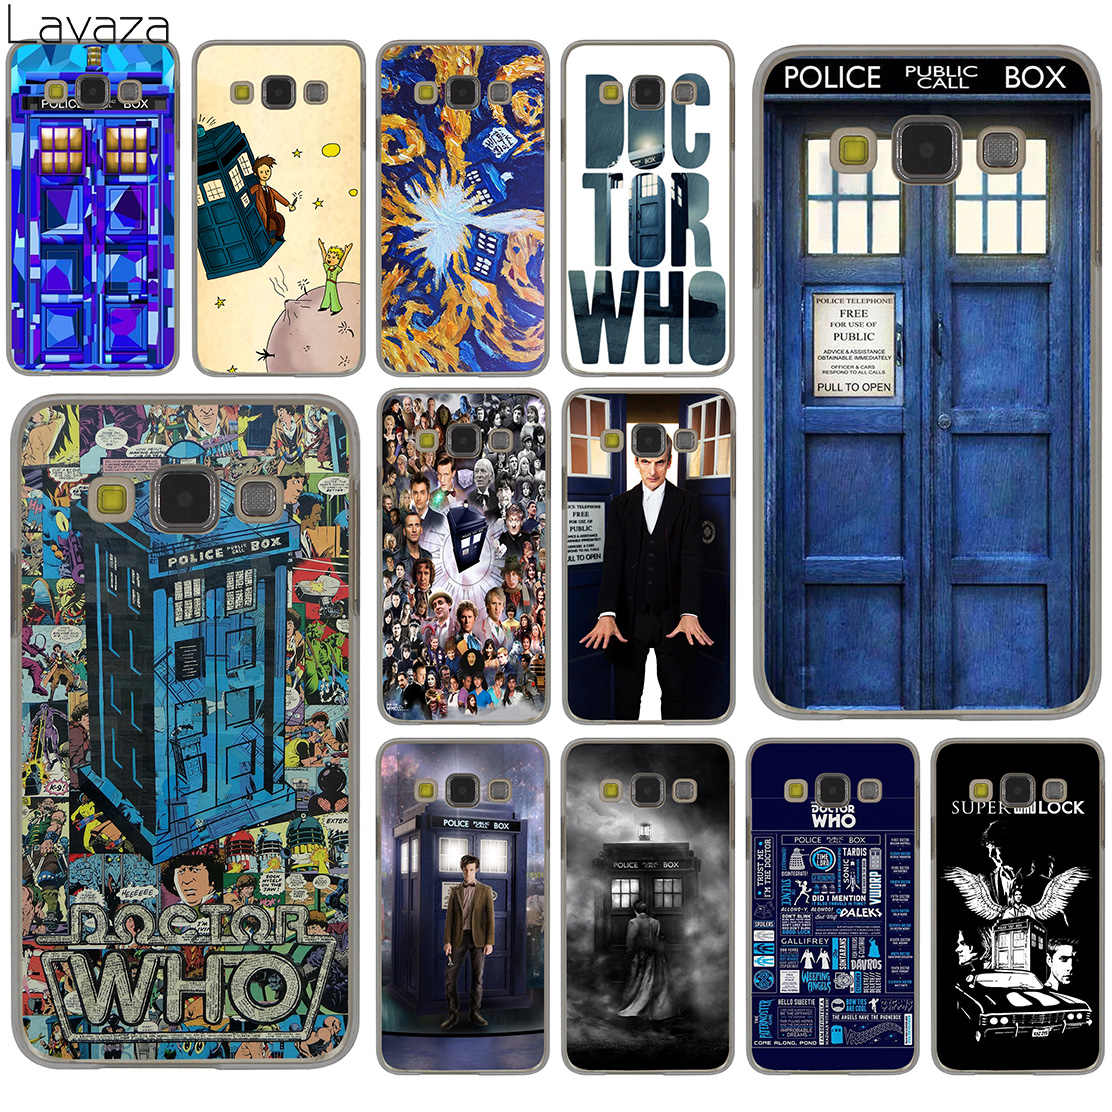 Lavaza Doctor who tardis artwork blue Hard Case for Samsung Galaxy S10 S10E S8 Plus S6 S7 Edge S9 Plus Phone Cover